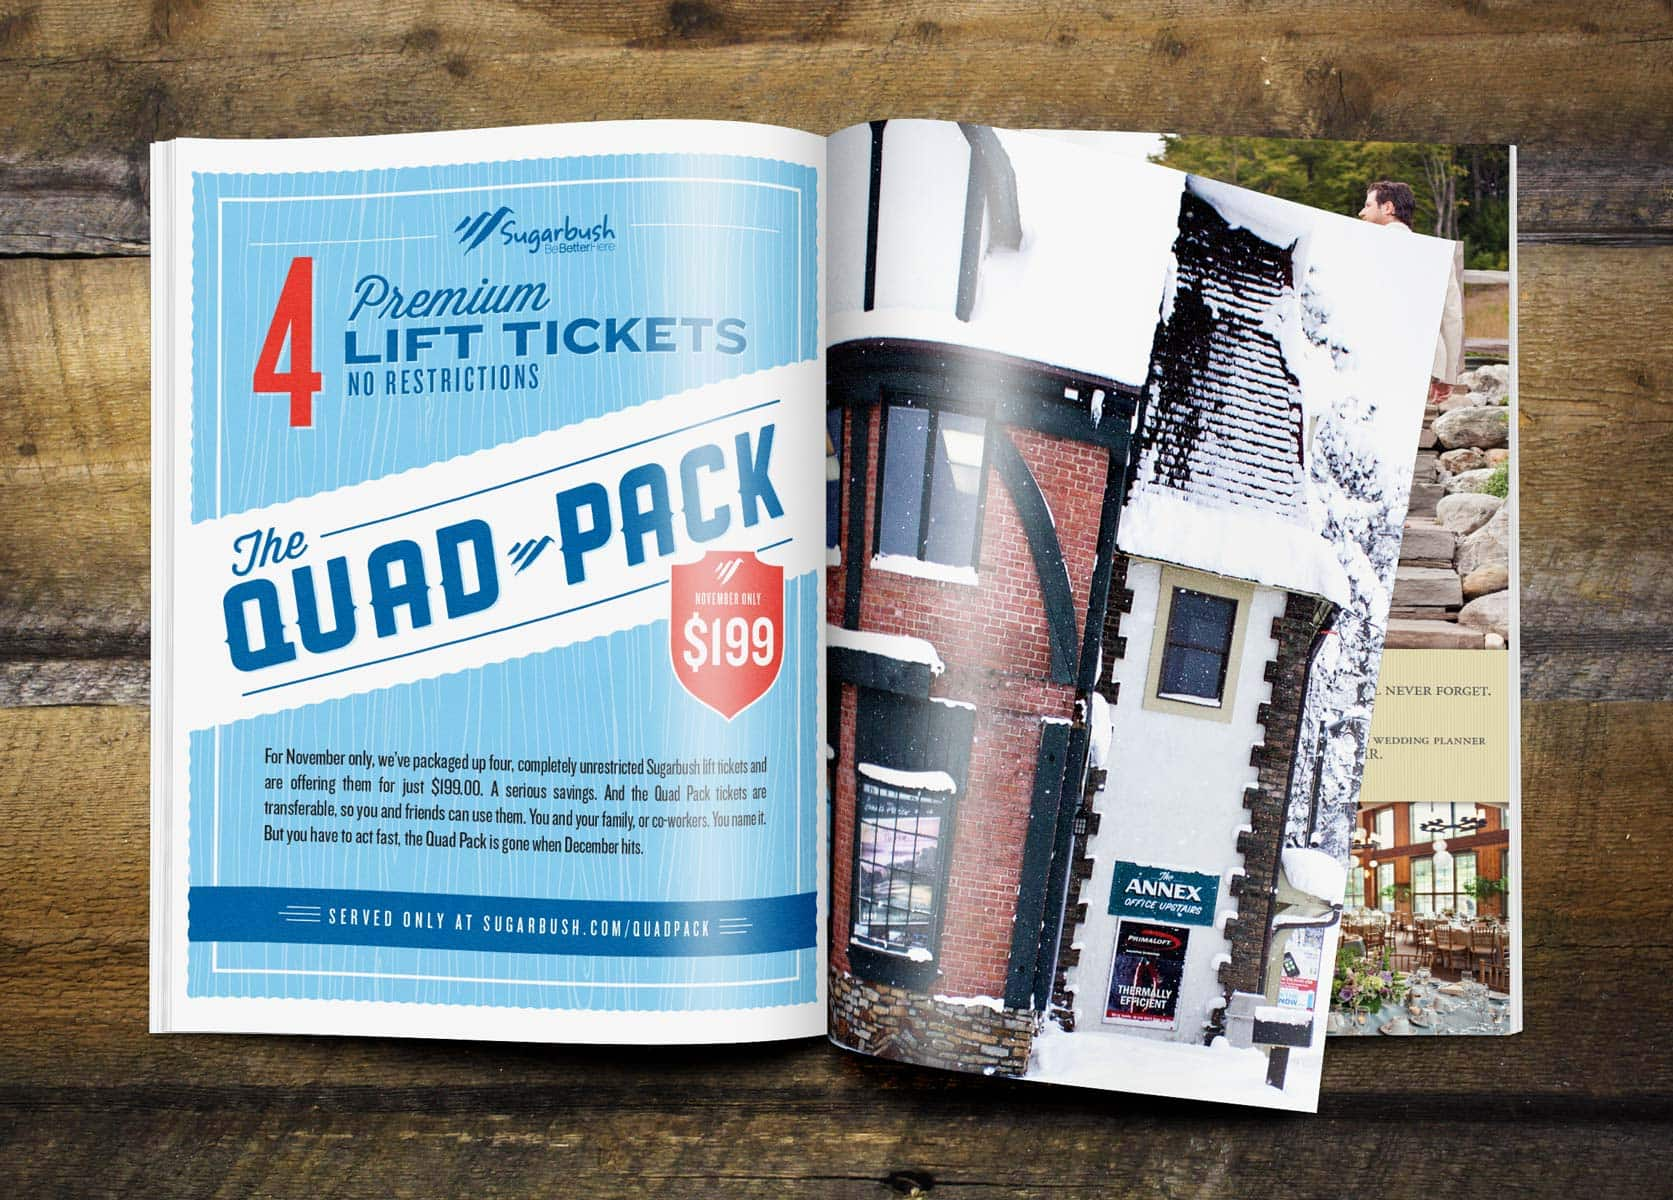 Advertising campaign for Sugarbush resort - Clutch Creative Co. Advertising